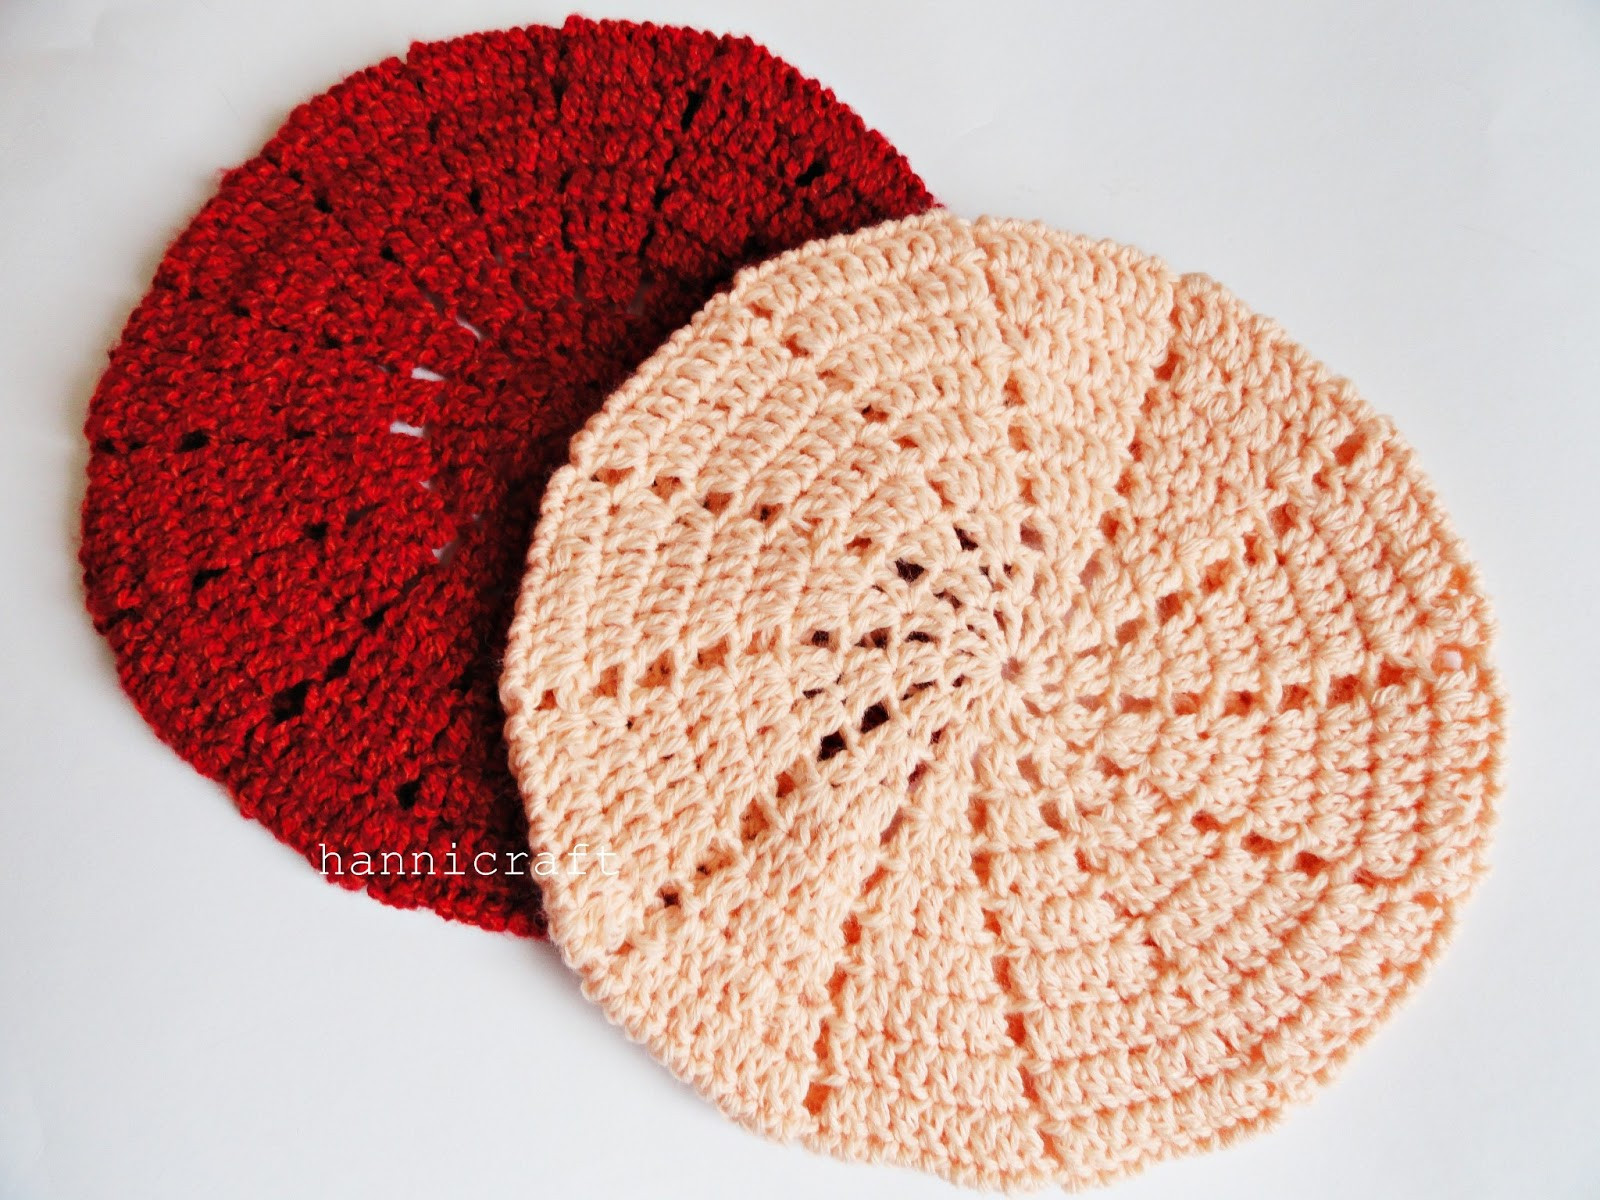 hannicraft Simple beret crochet pattern